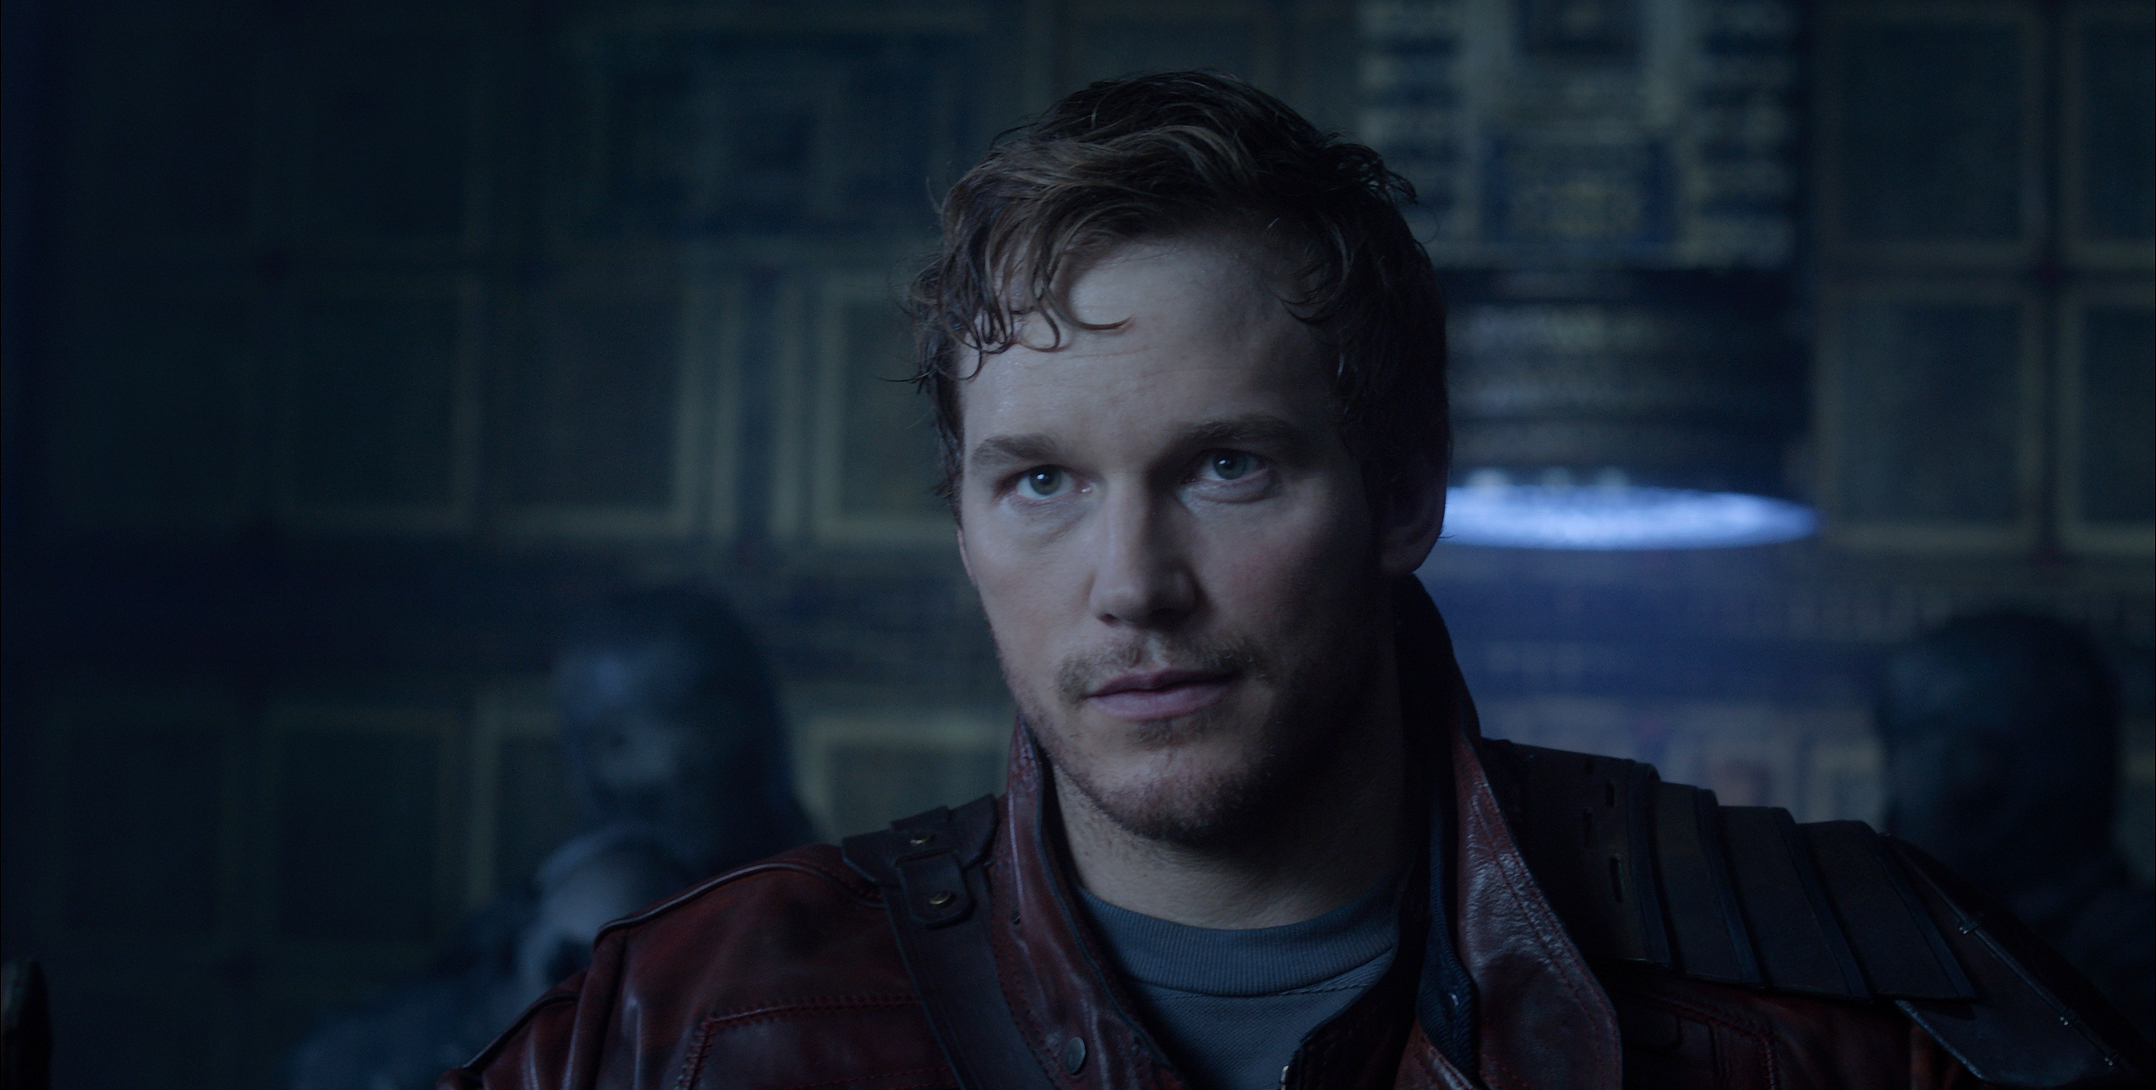 Guardians-of-the-Galaxy-Hi-Res-Photo-3.jpg